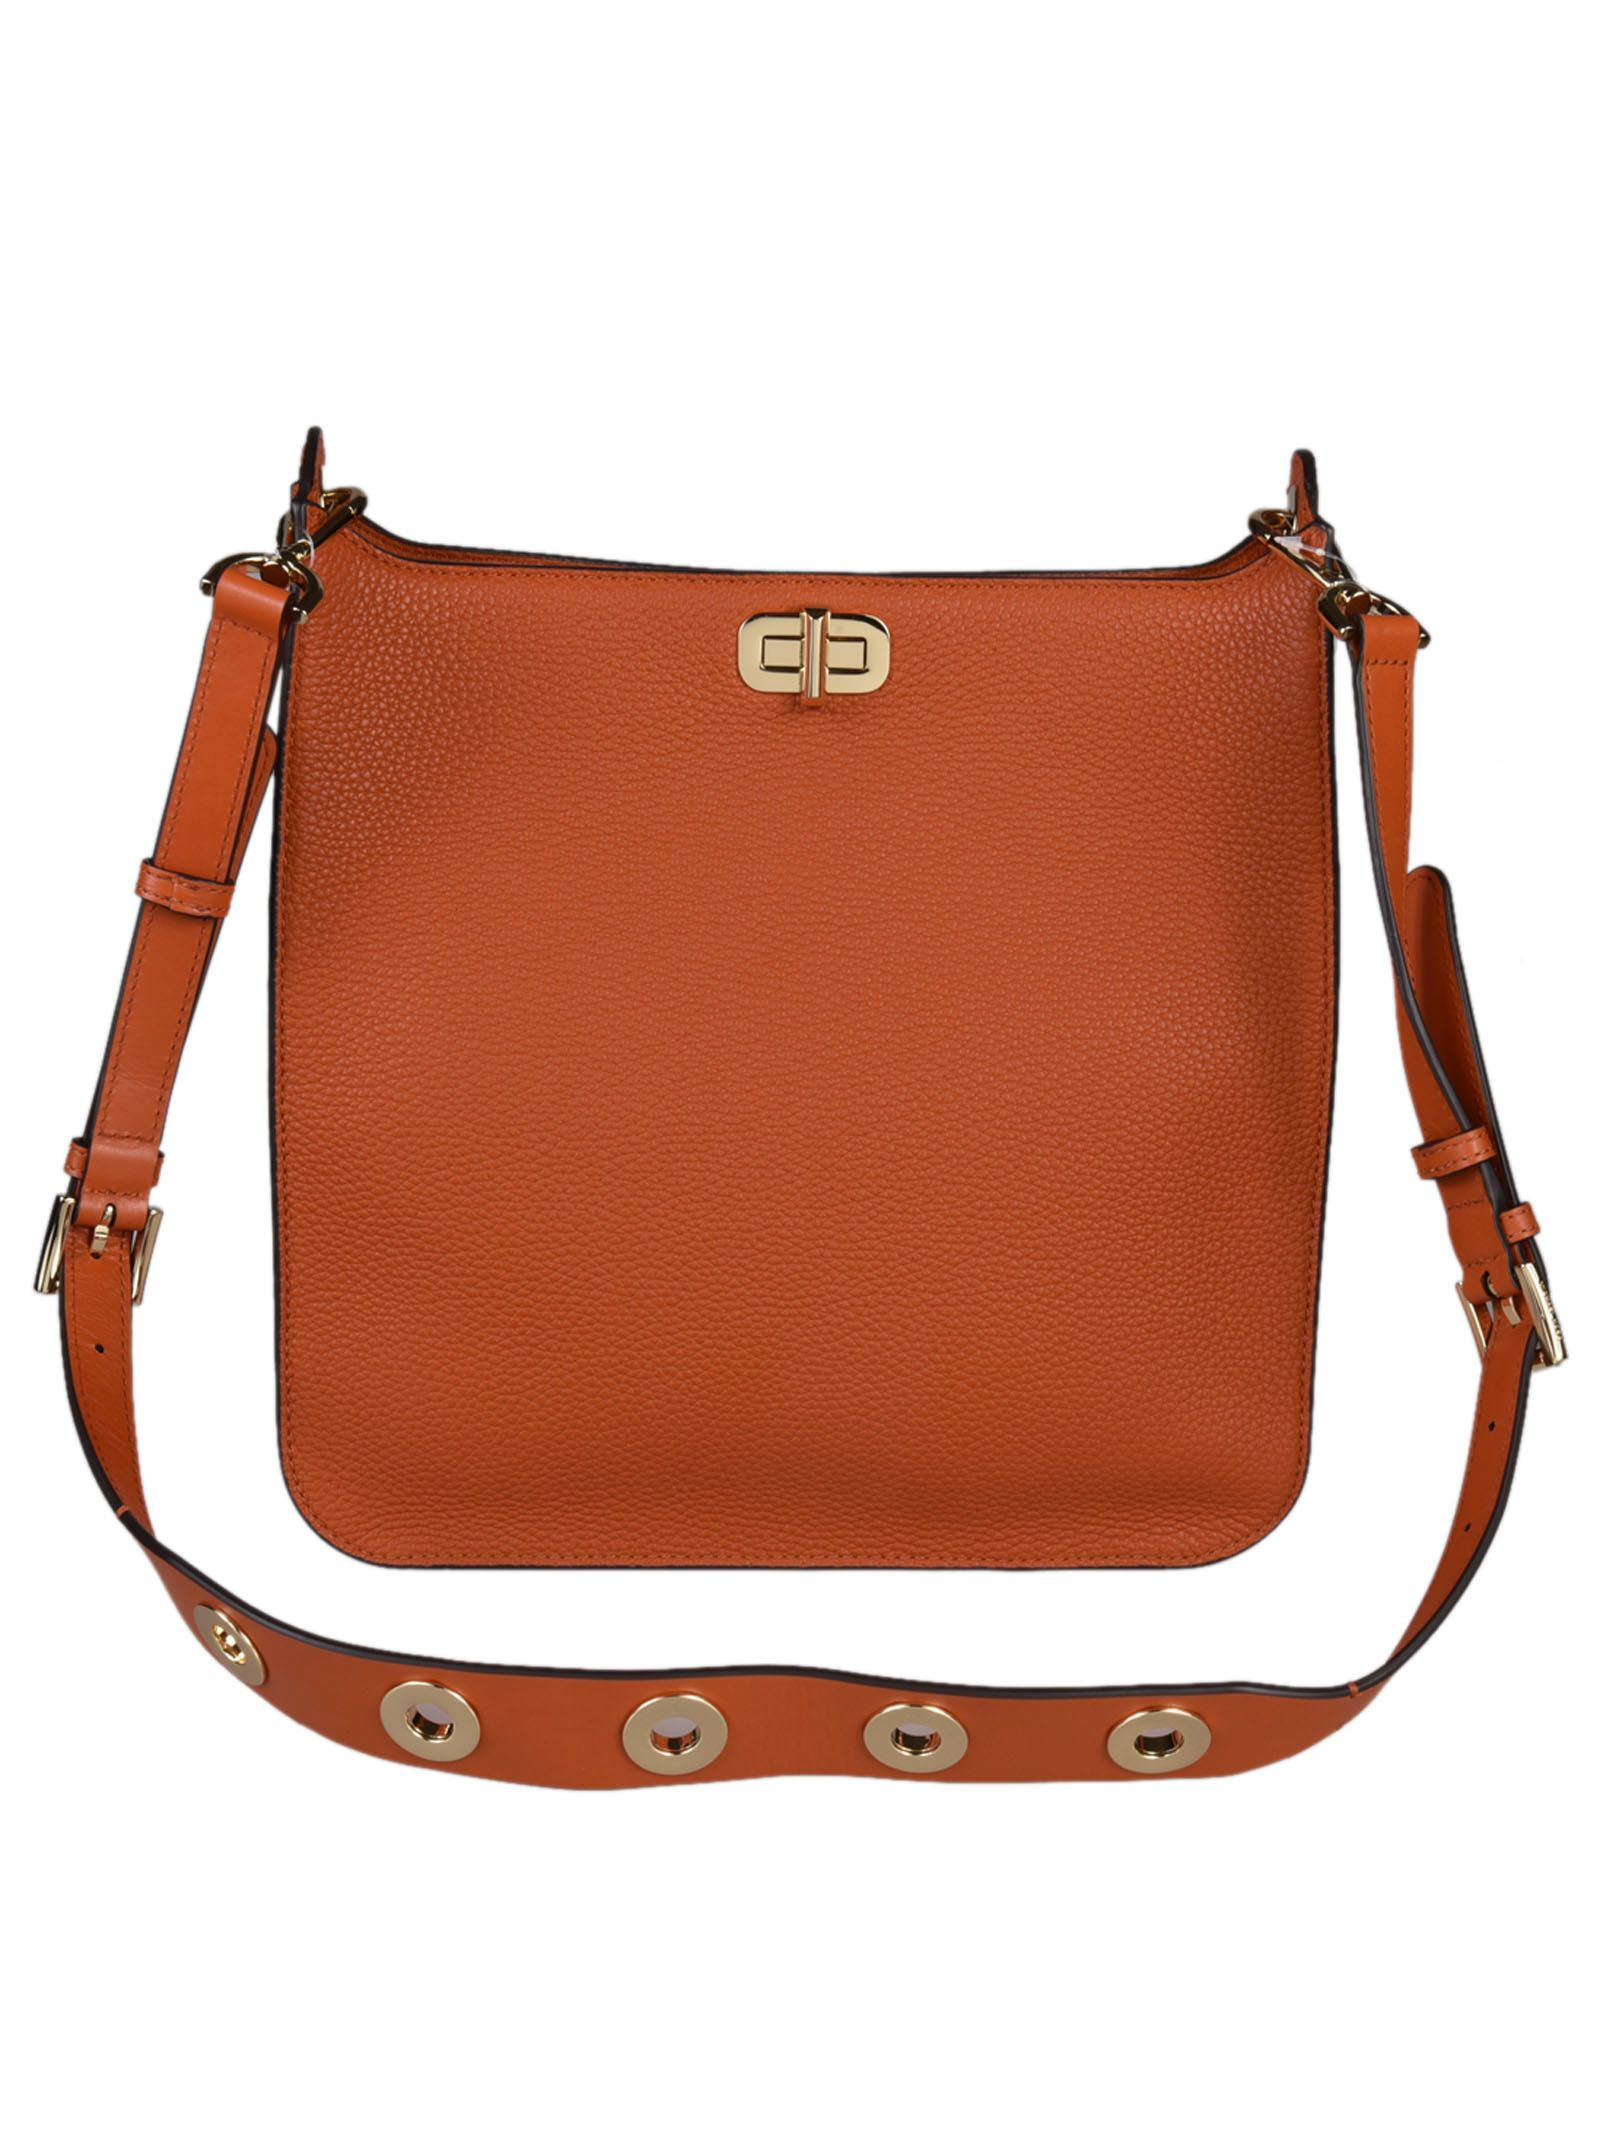 fde8605acd241 ... Michael Kors Sullivan Large North South Messenger Shoulder Bag - Orange